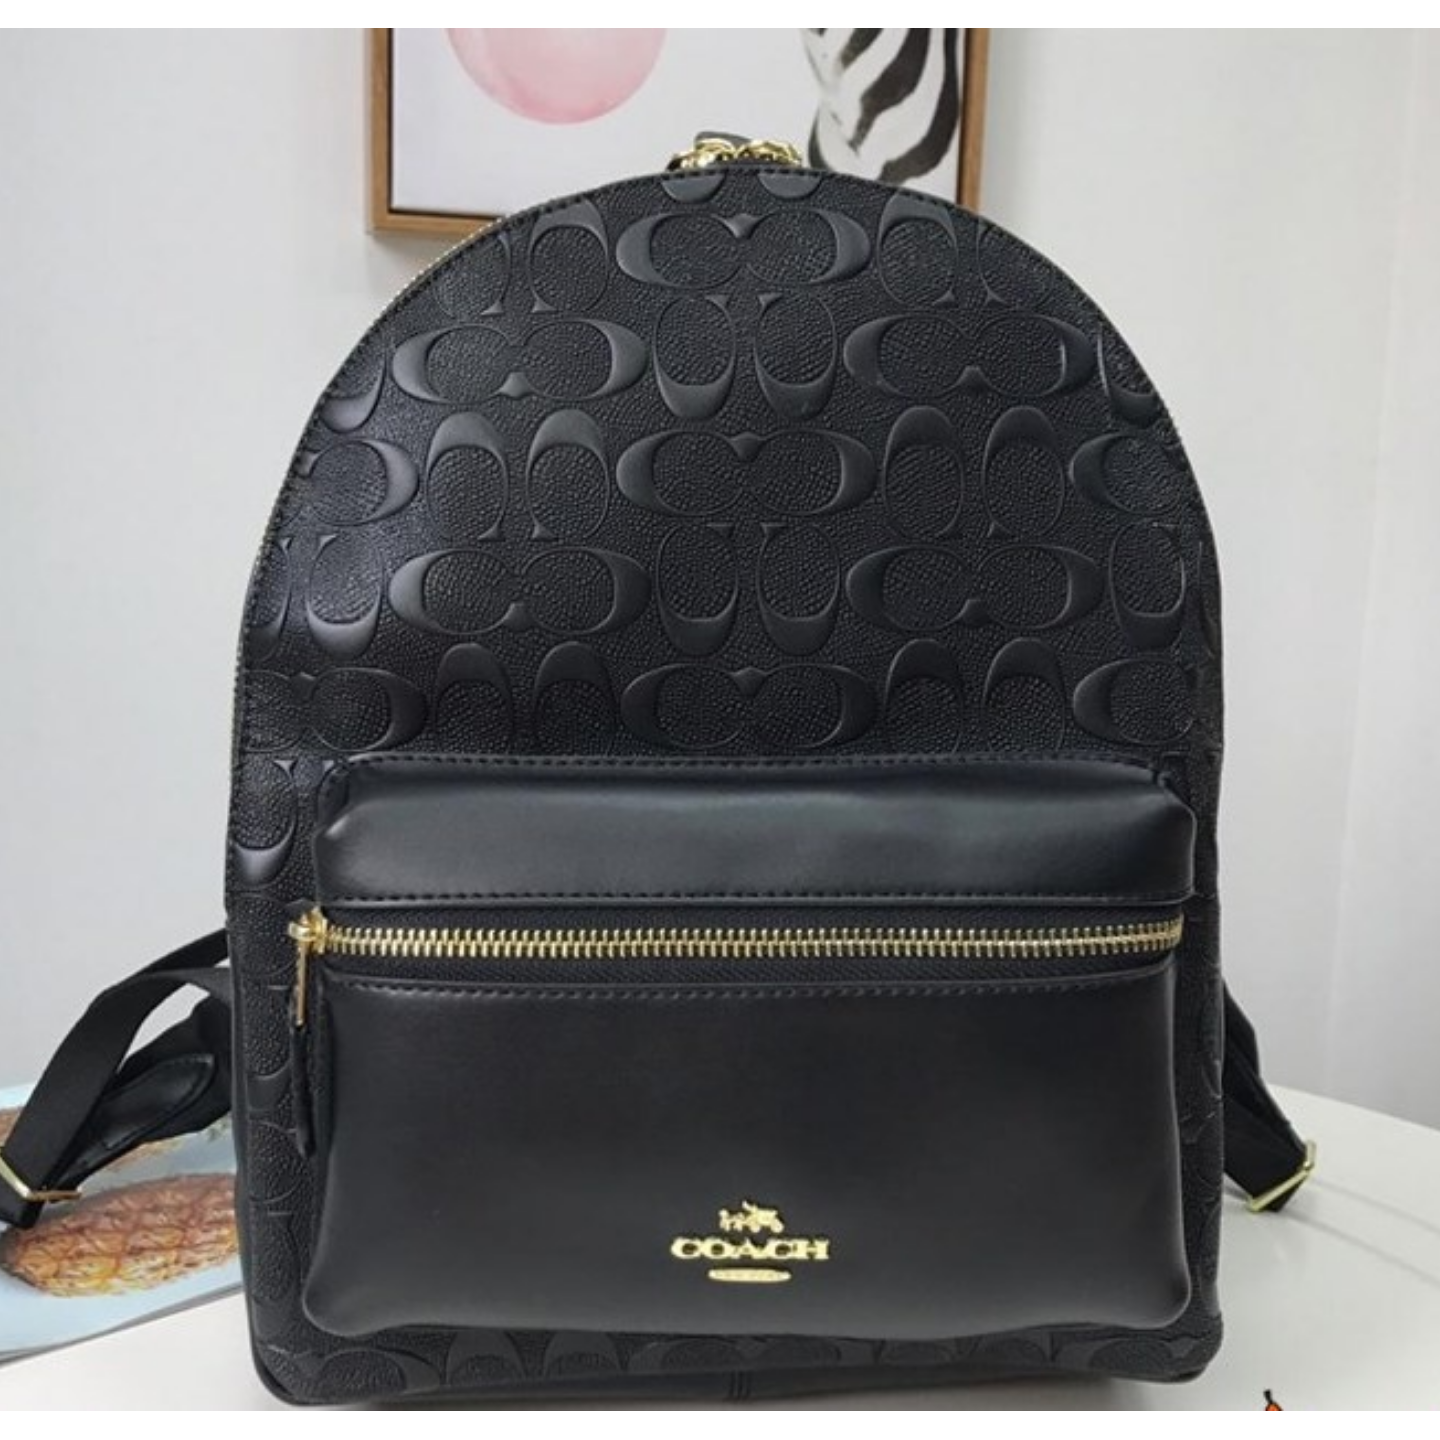 (SG COD) Women's Backpack F32083 Embossed Leathe Coach Backpack